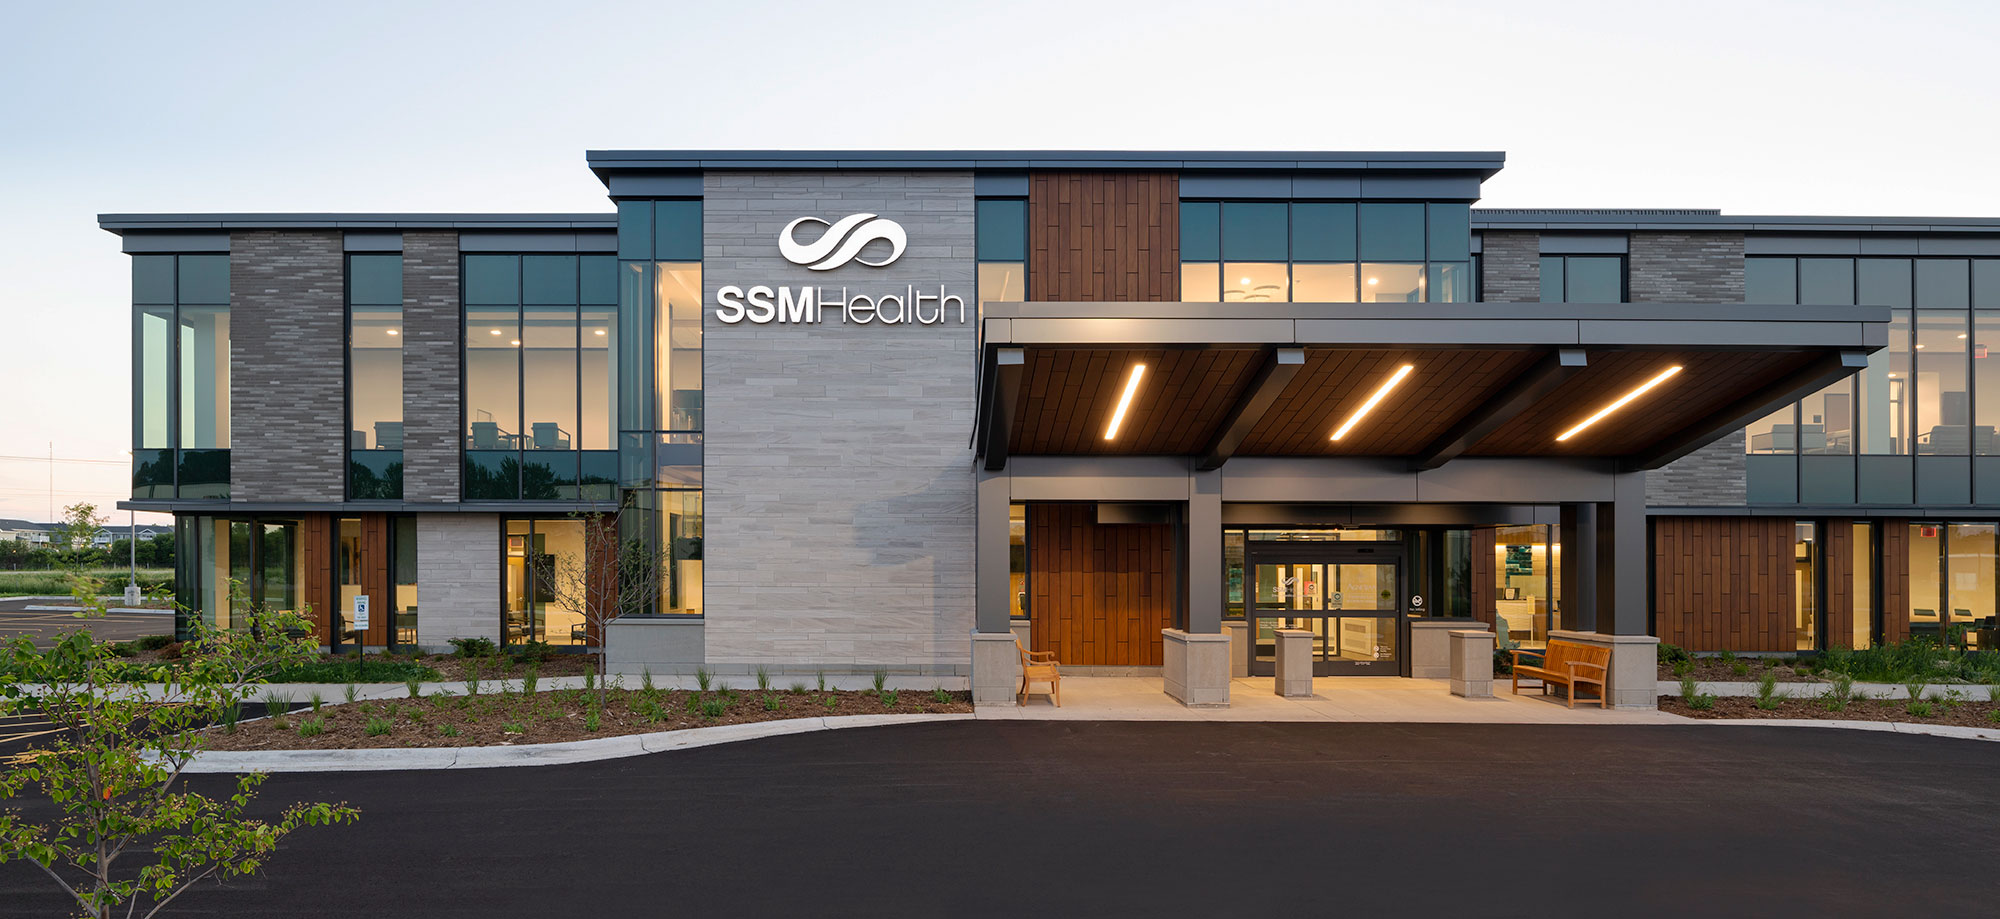 C.D. Smith Construction Manager modern healthcare architecture building project SSM Health Beaver Dam Clinic design